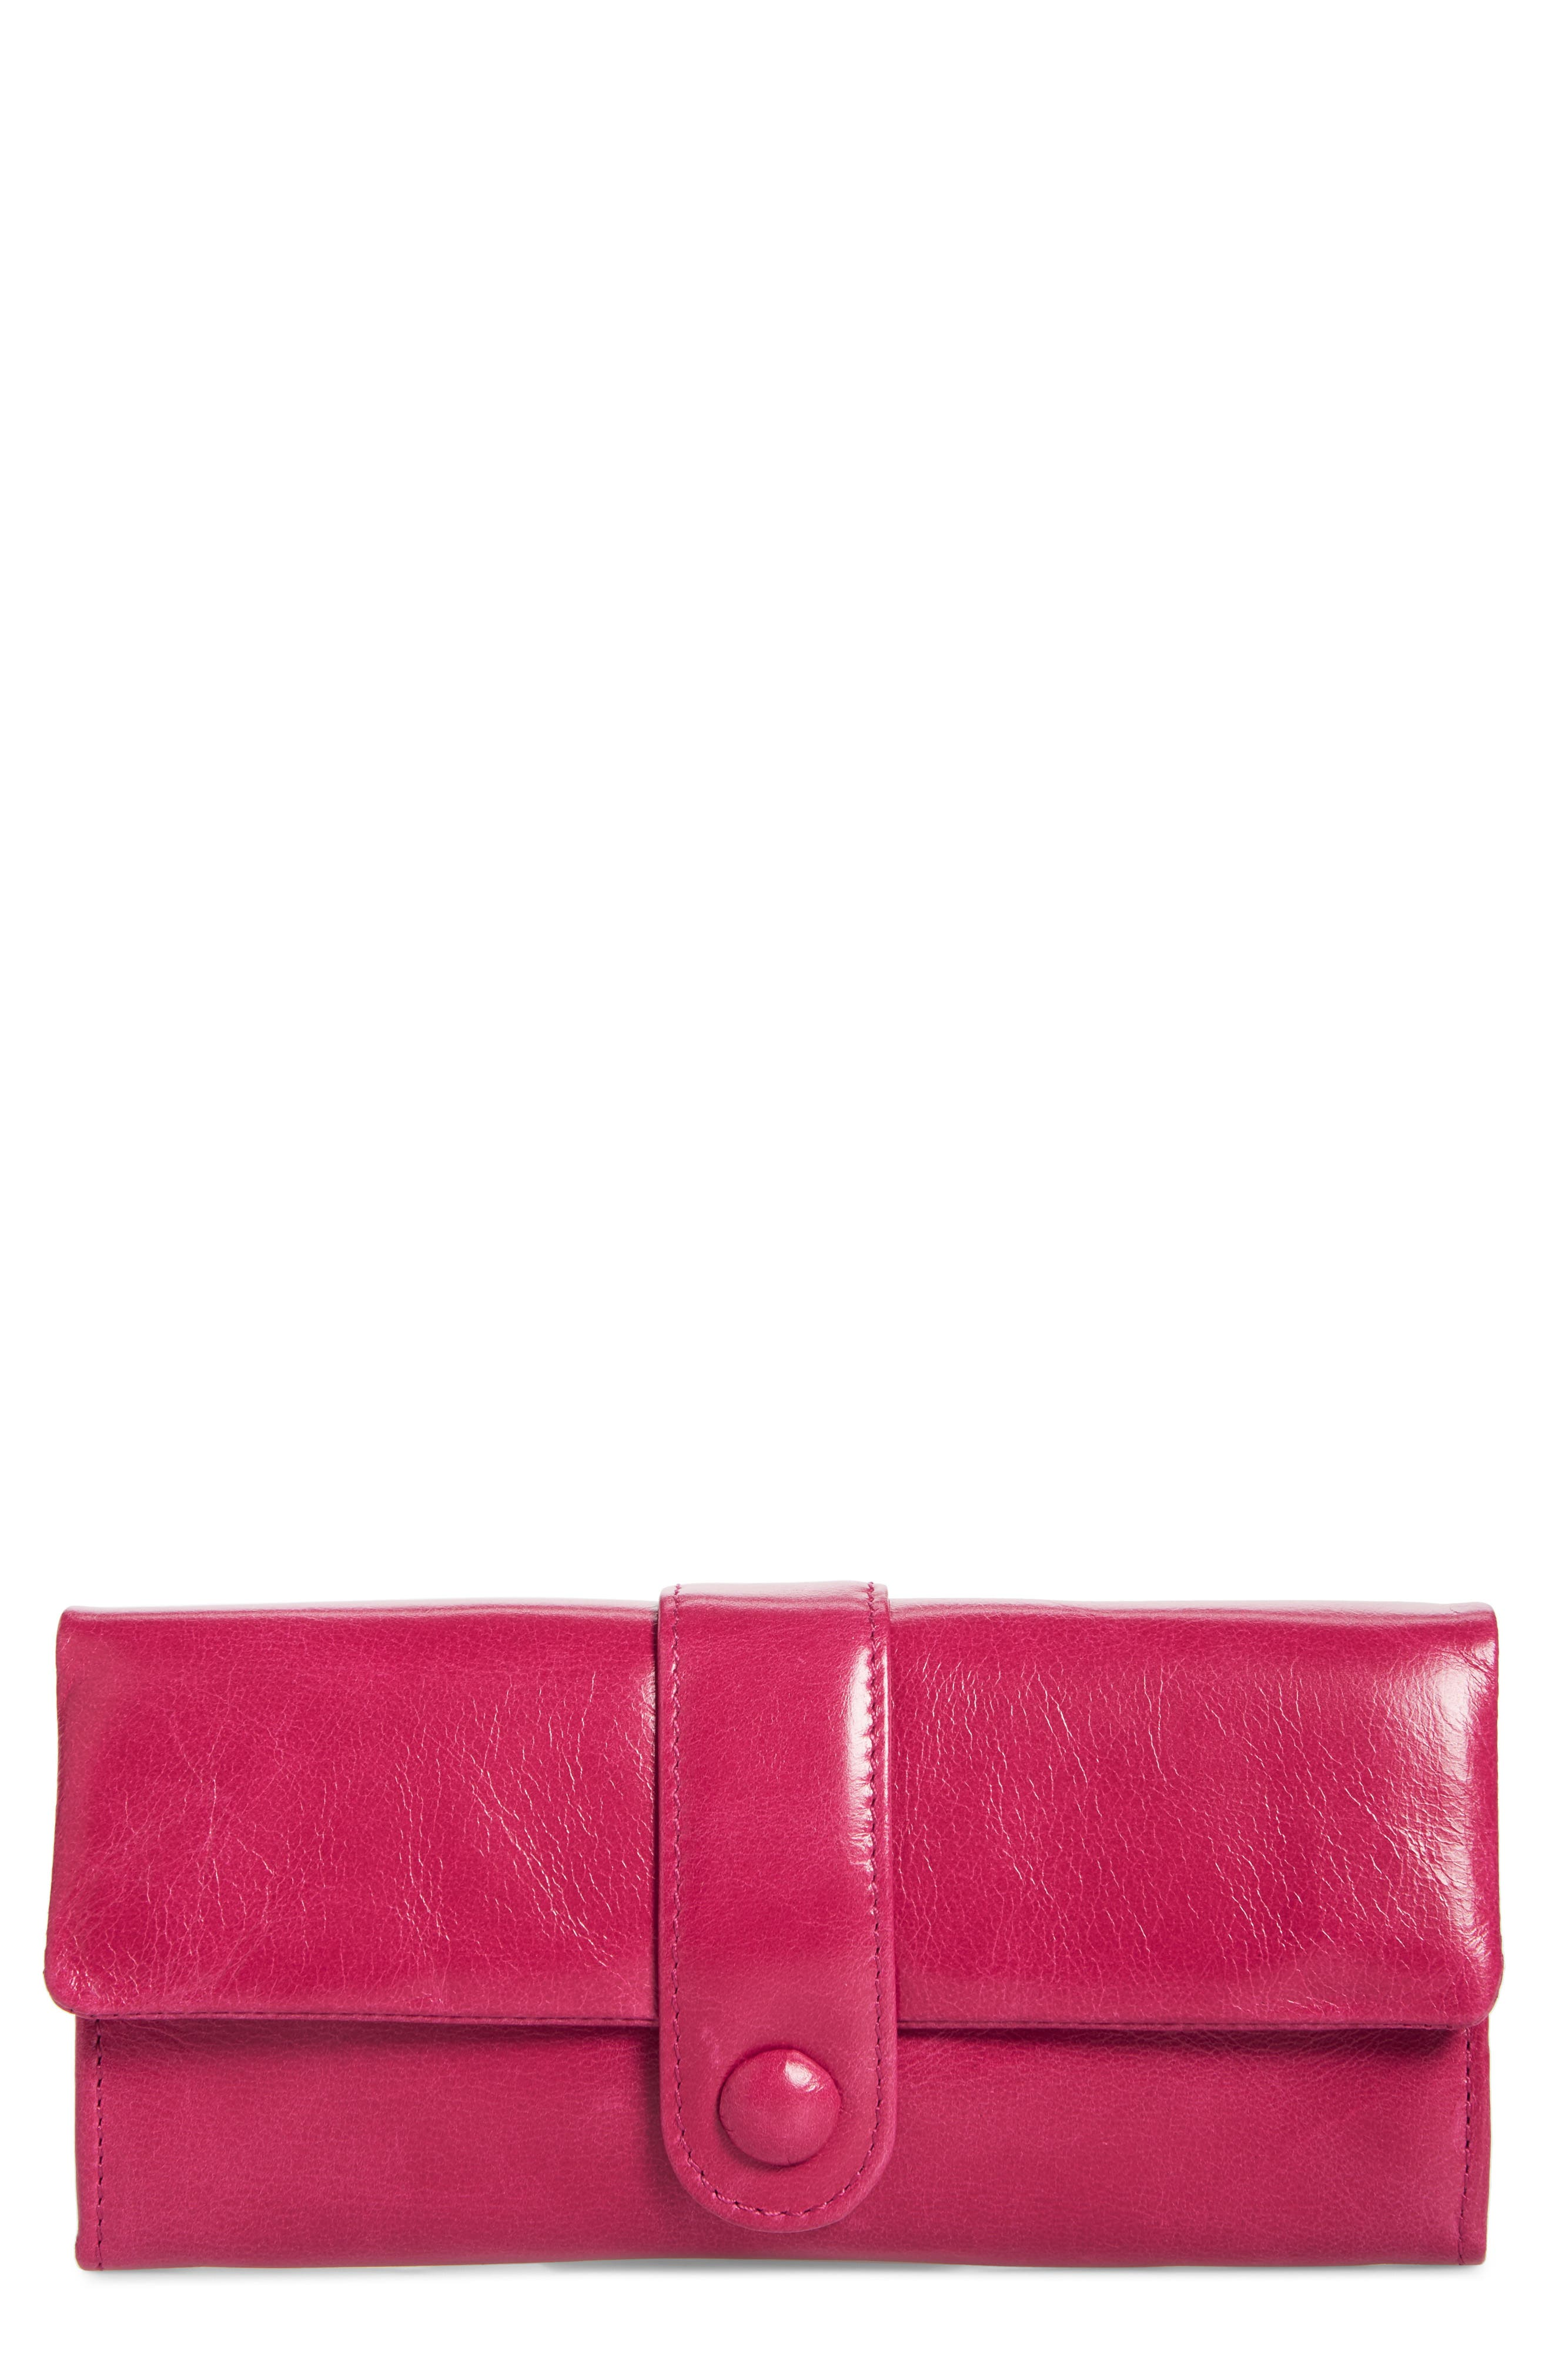 Main Image - Hobo Lex Continental Leather Wallet